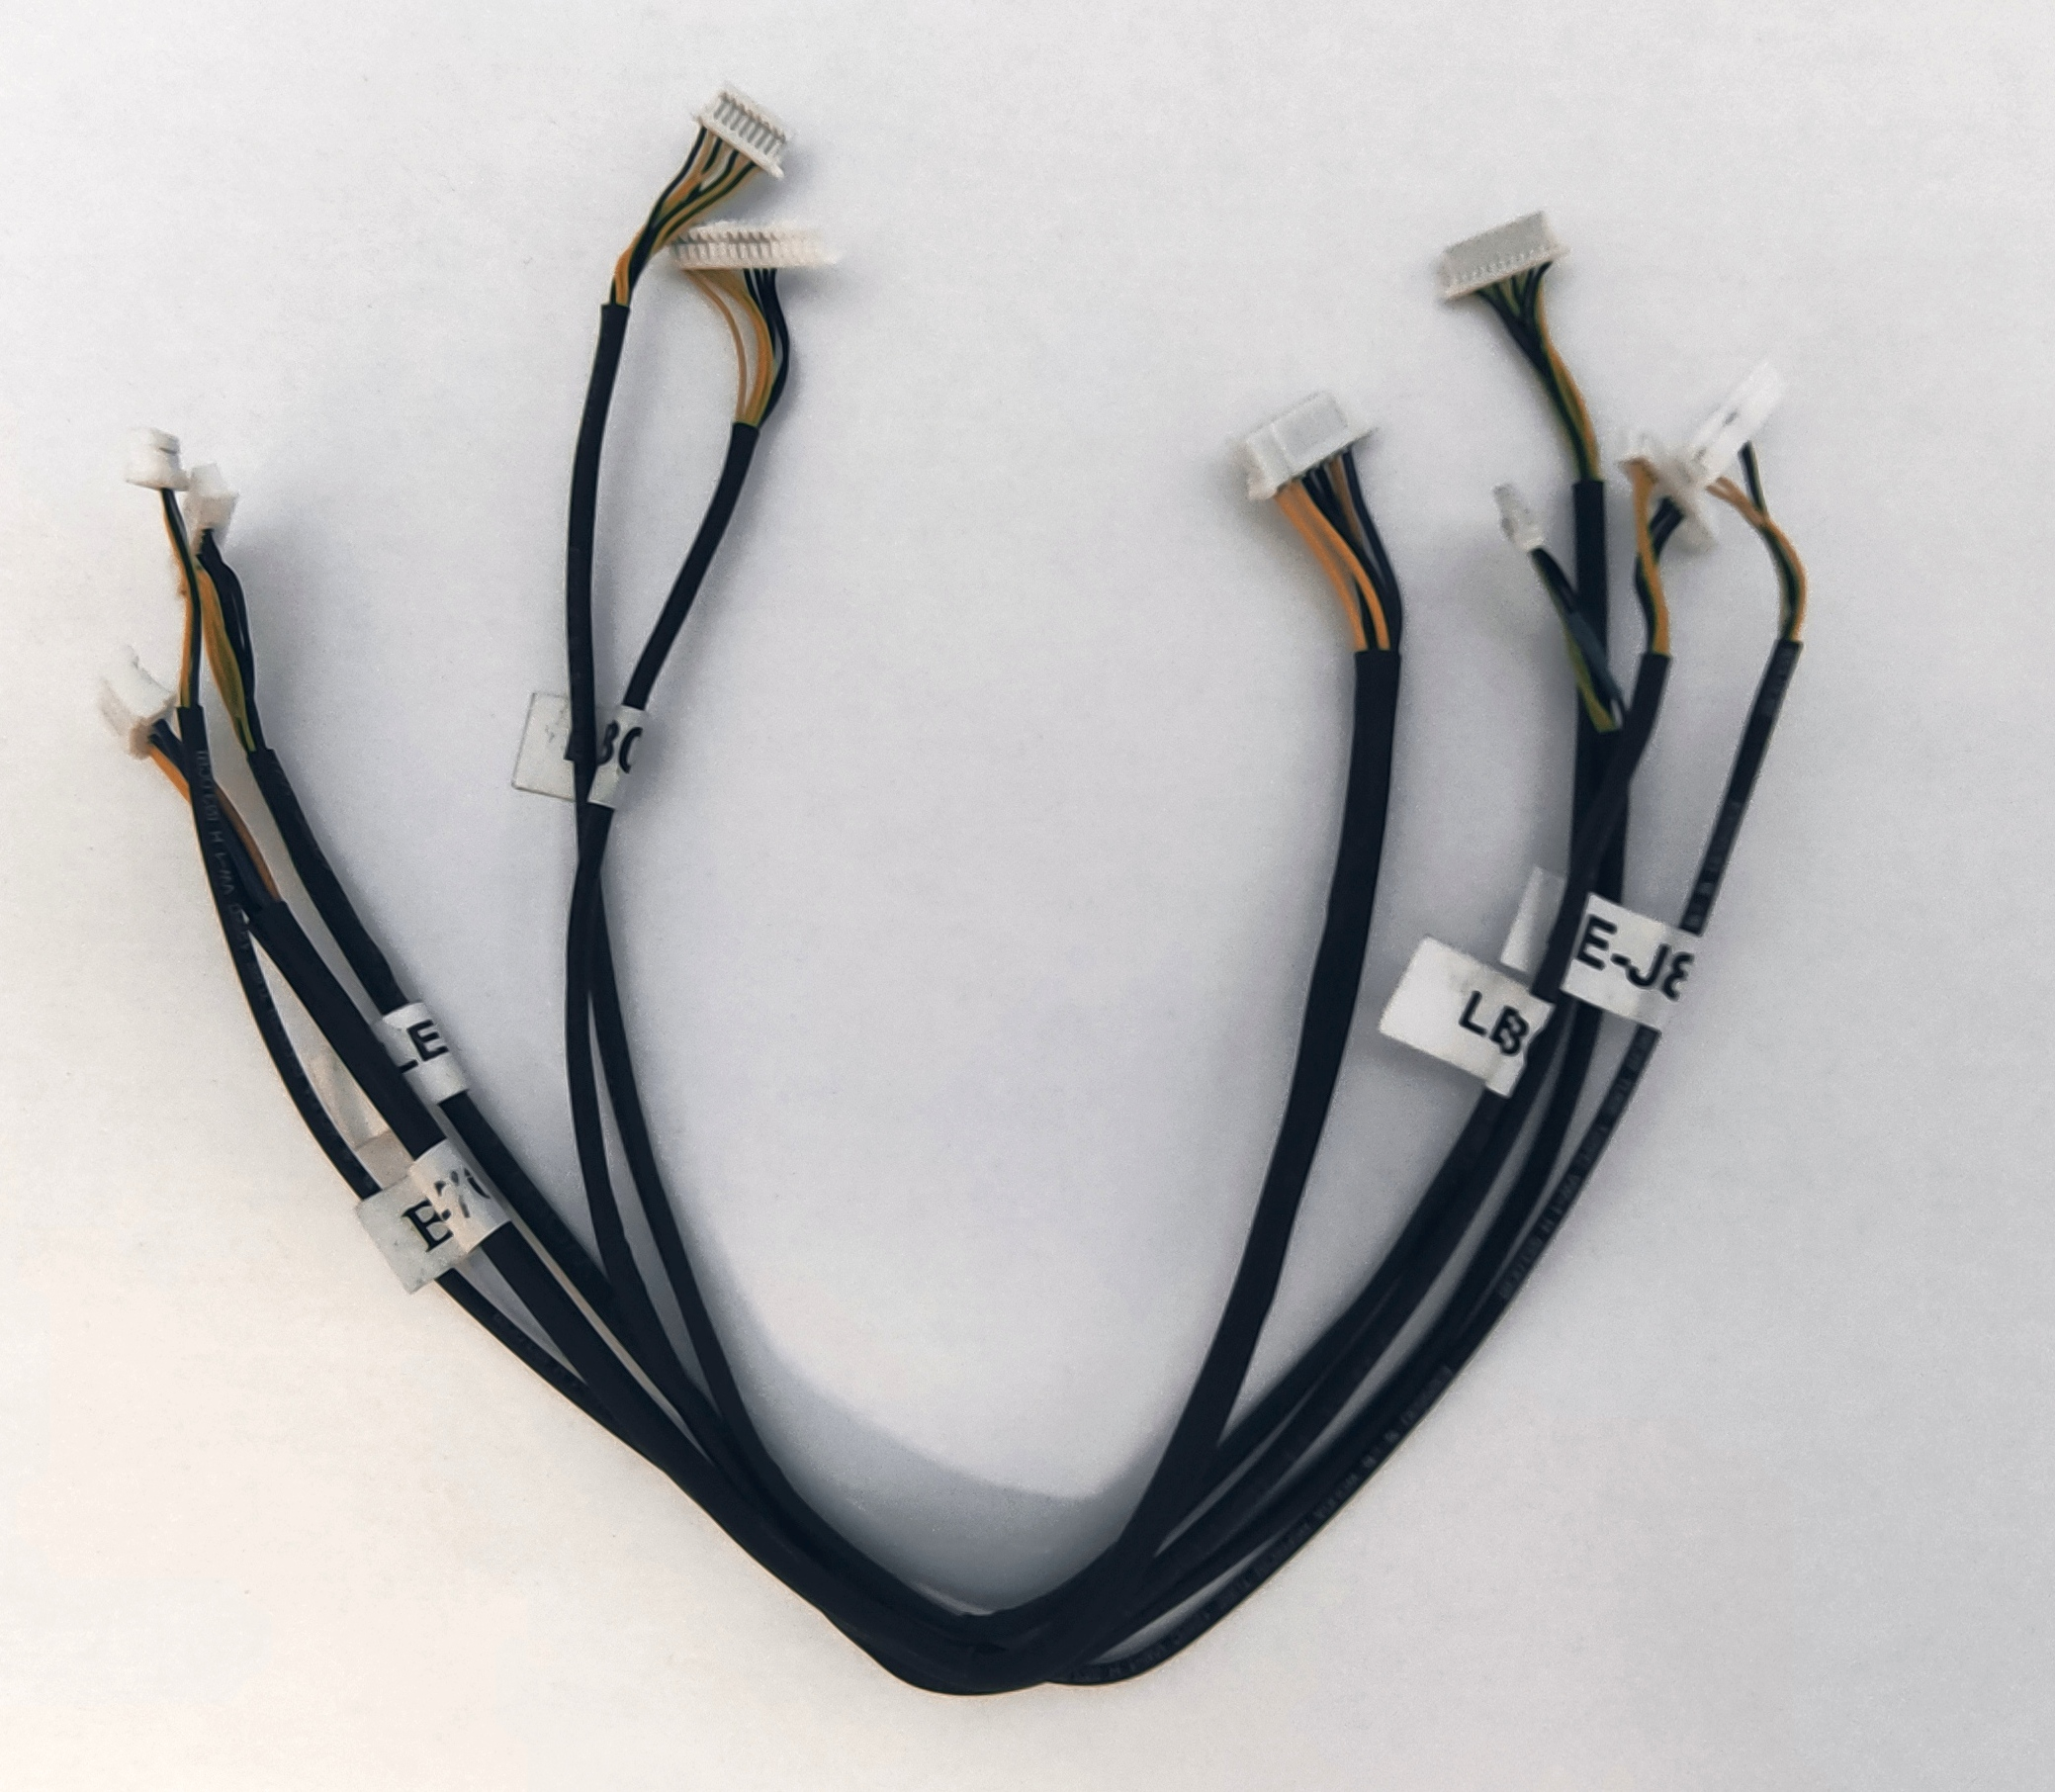 BT-cable-70621